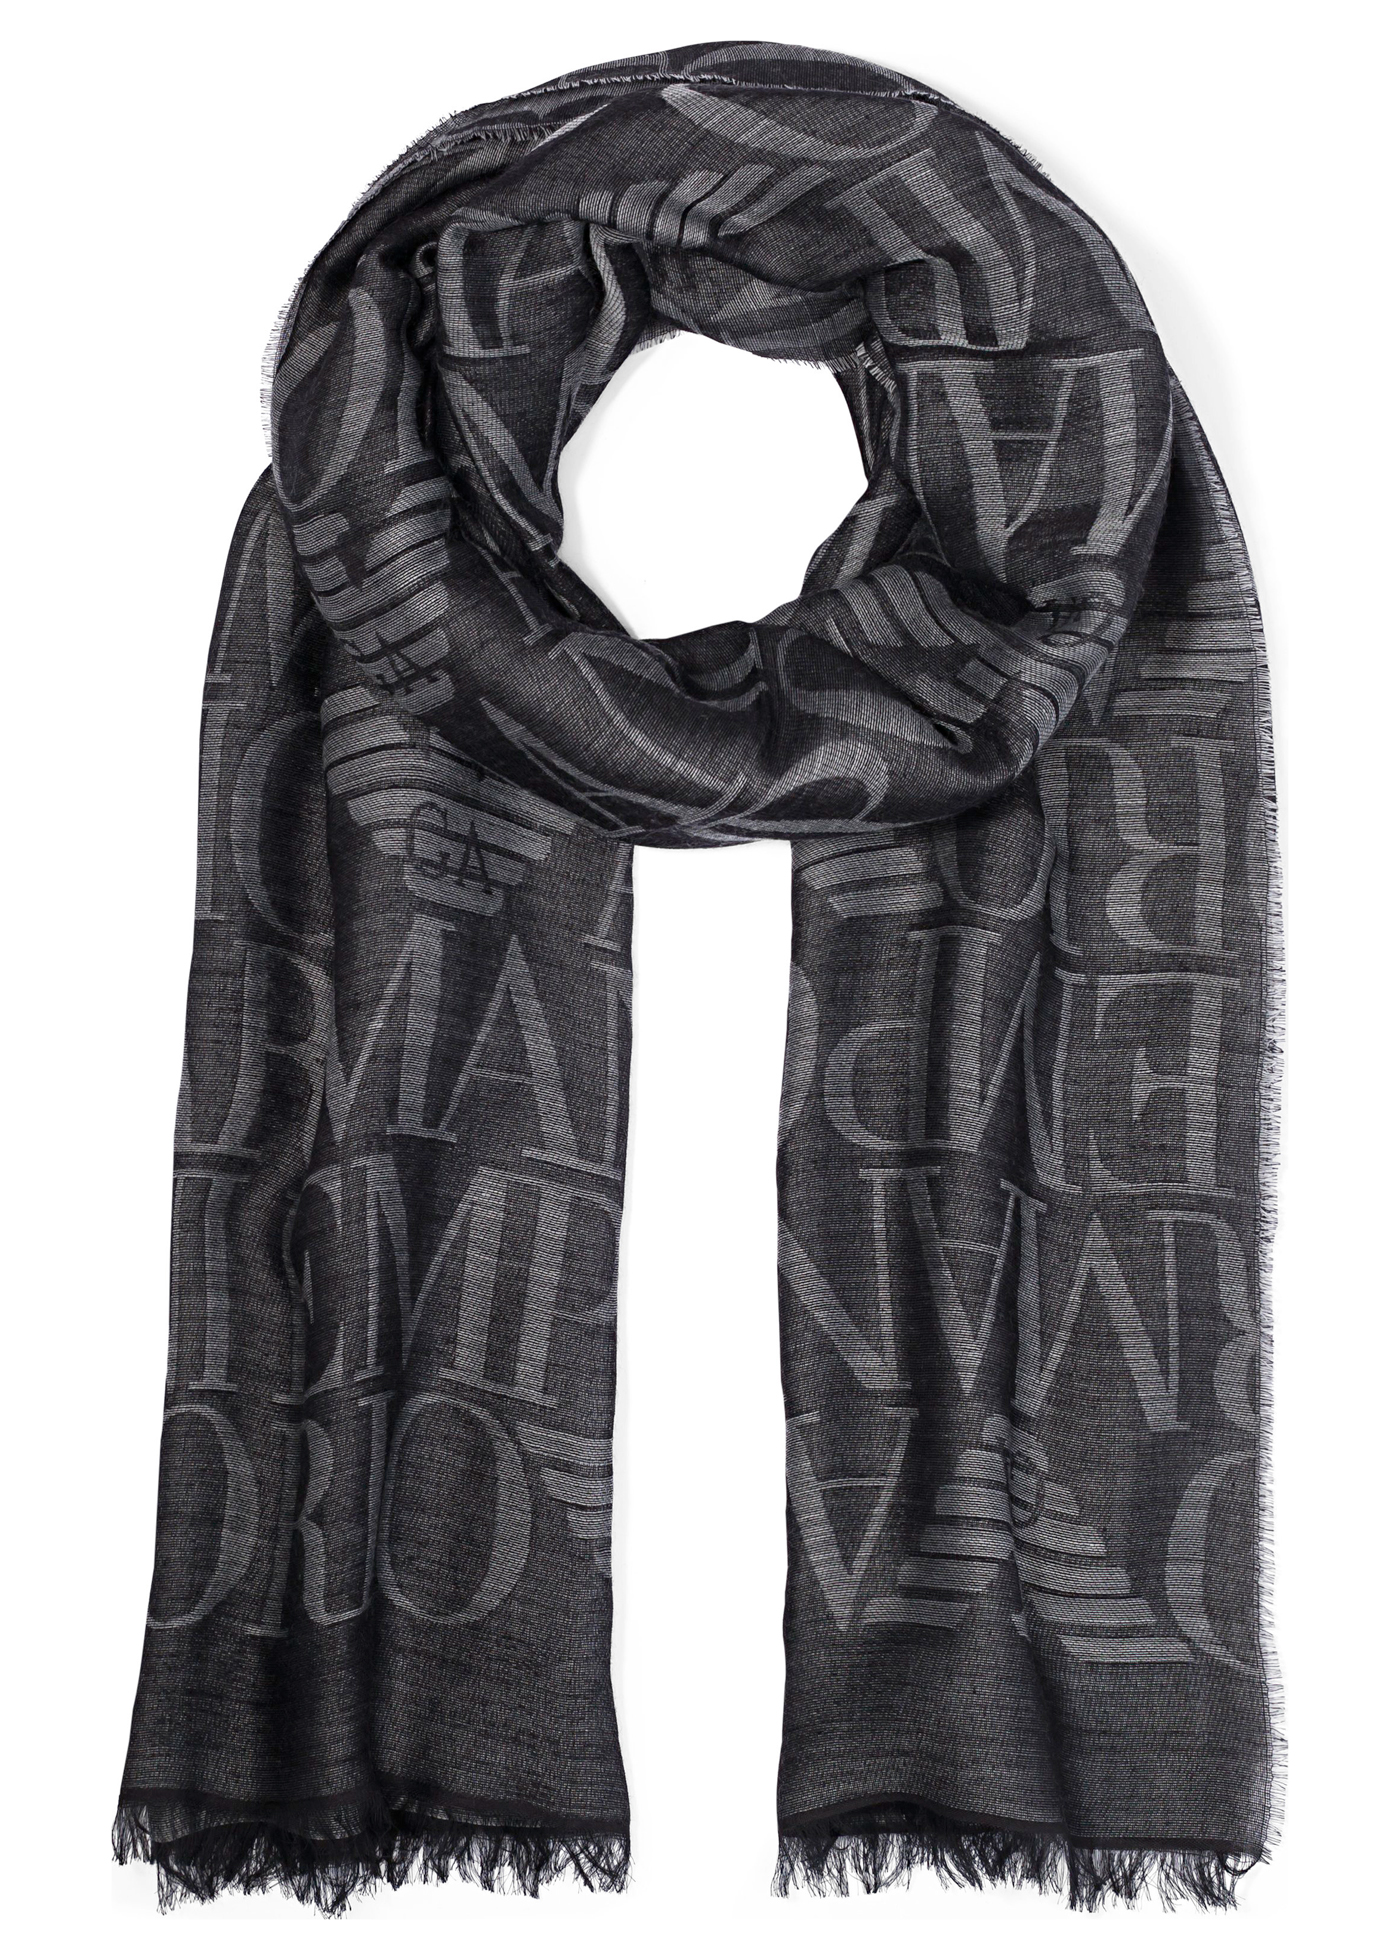 WOVEN STOLE 77X190 W image number 0